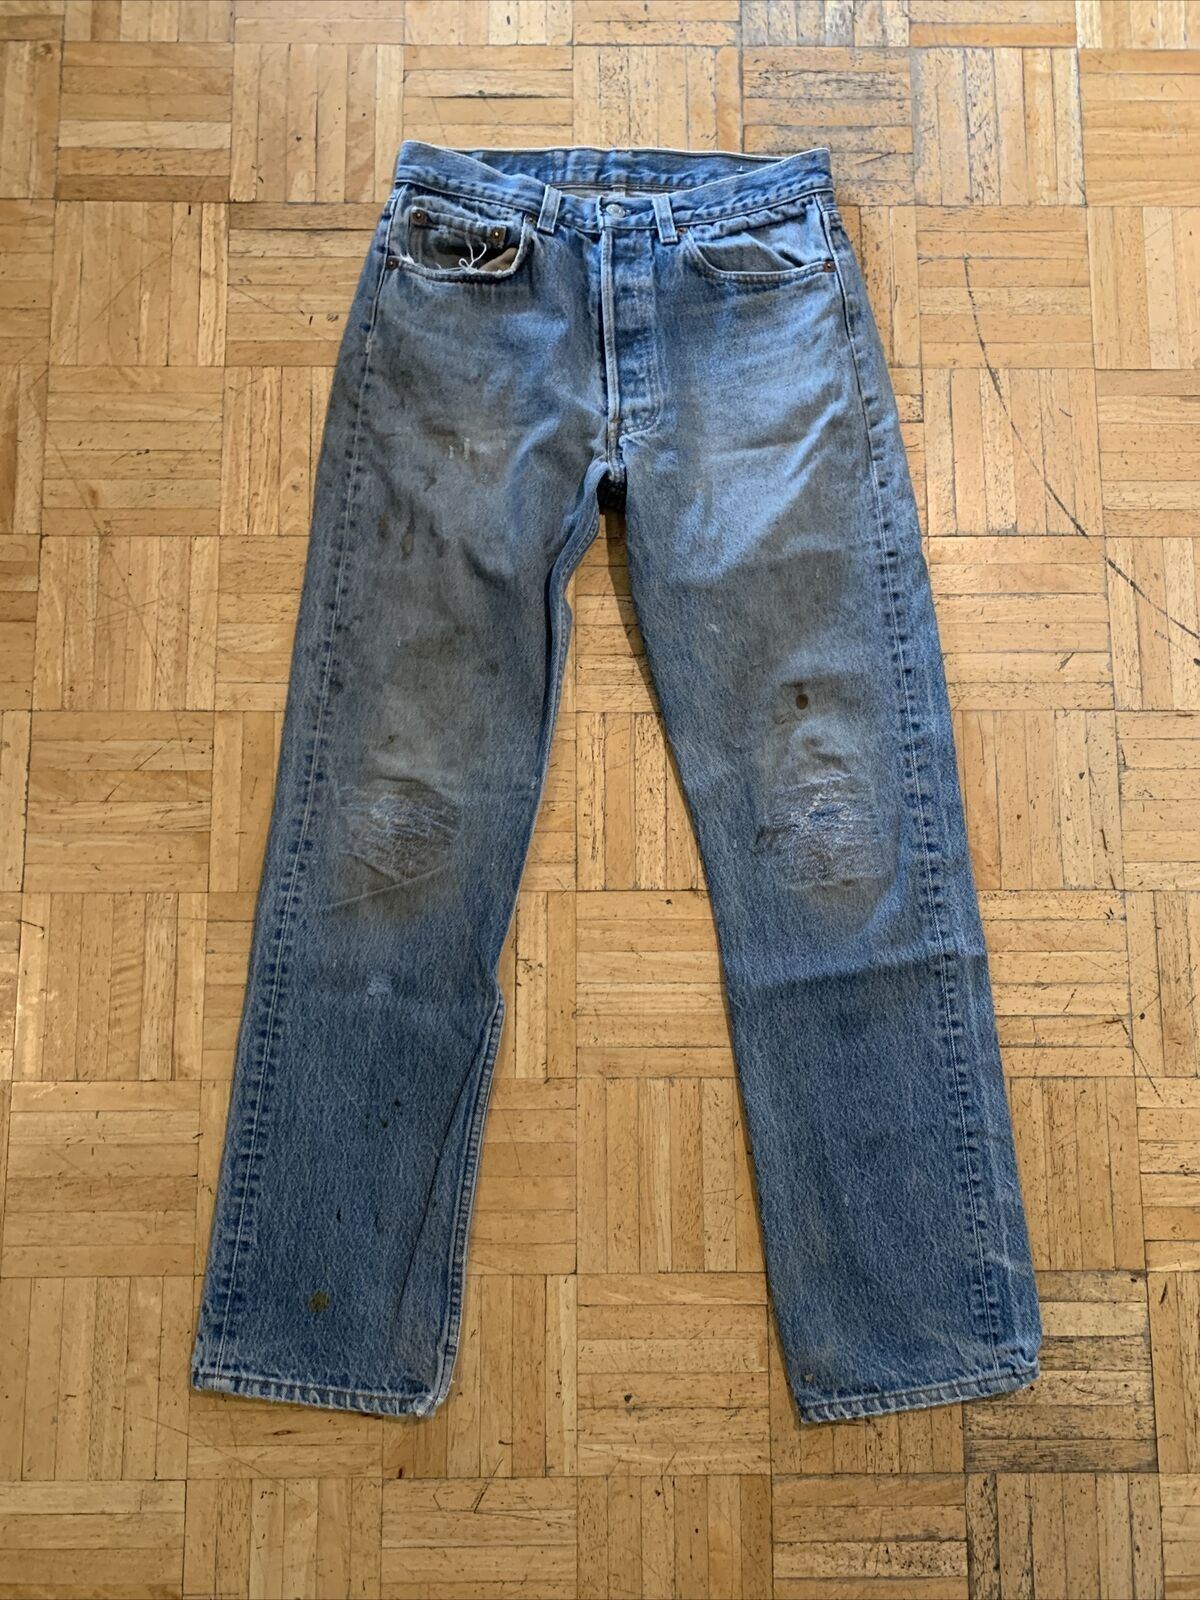 vtg levis 501 made in usa (9) - image 1